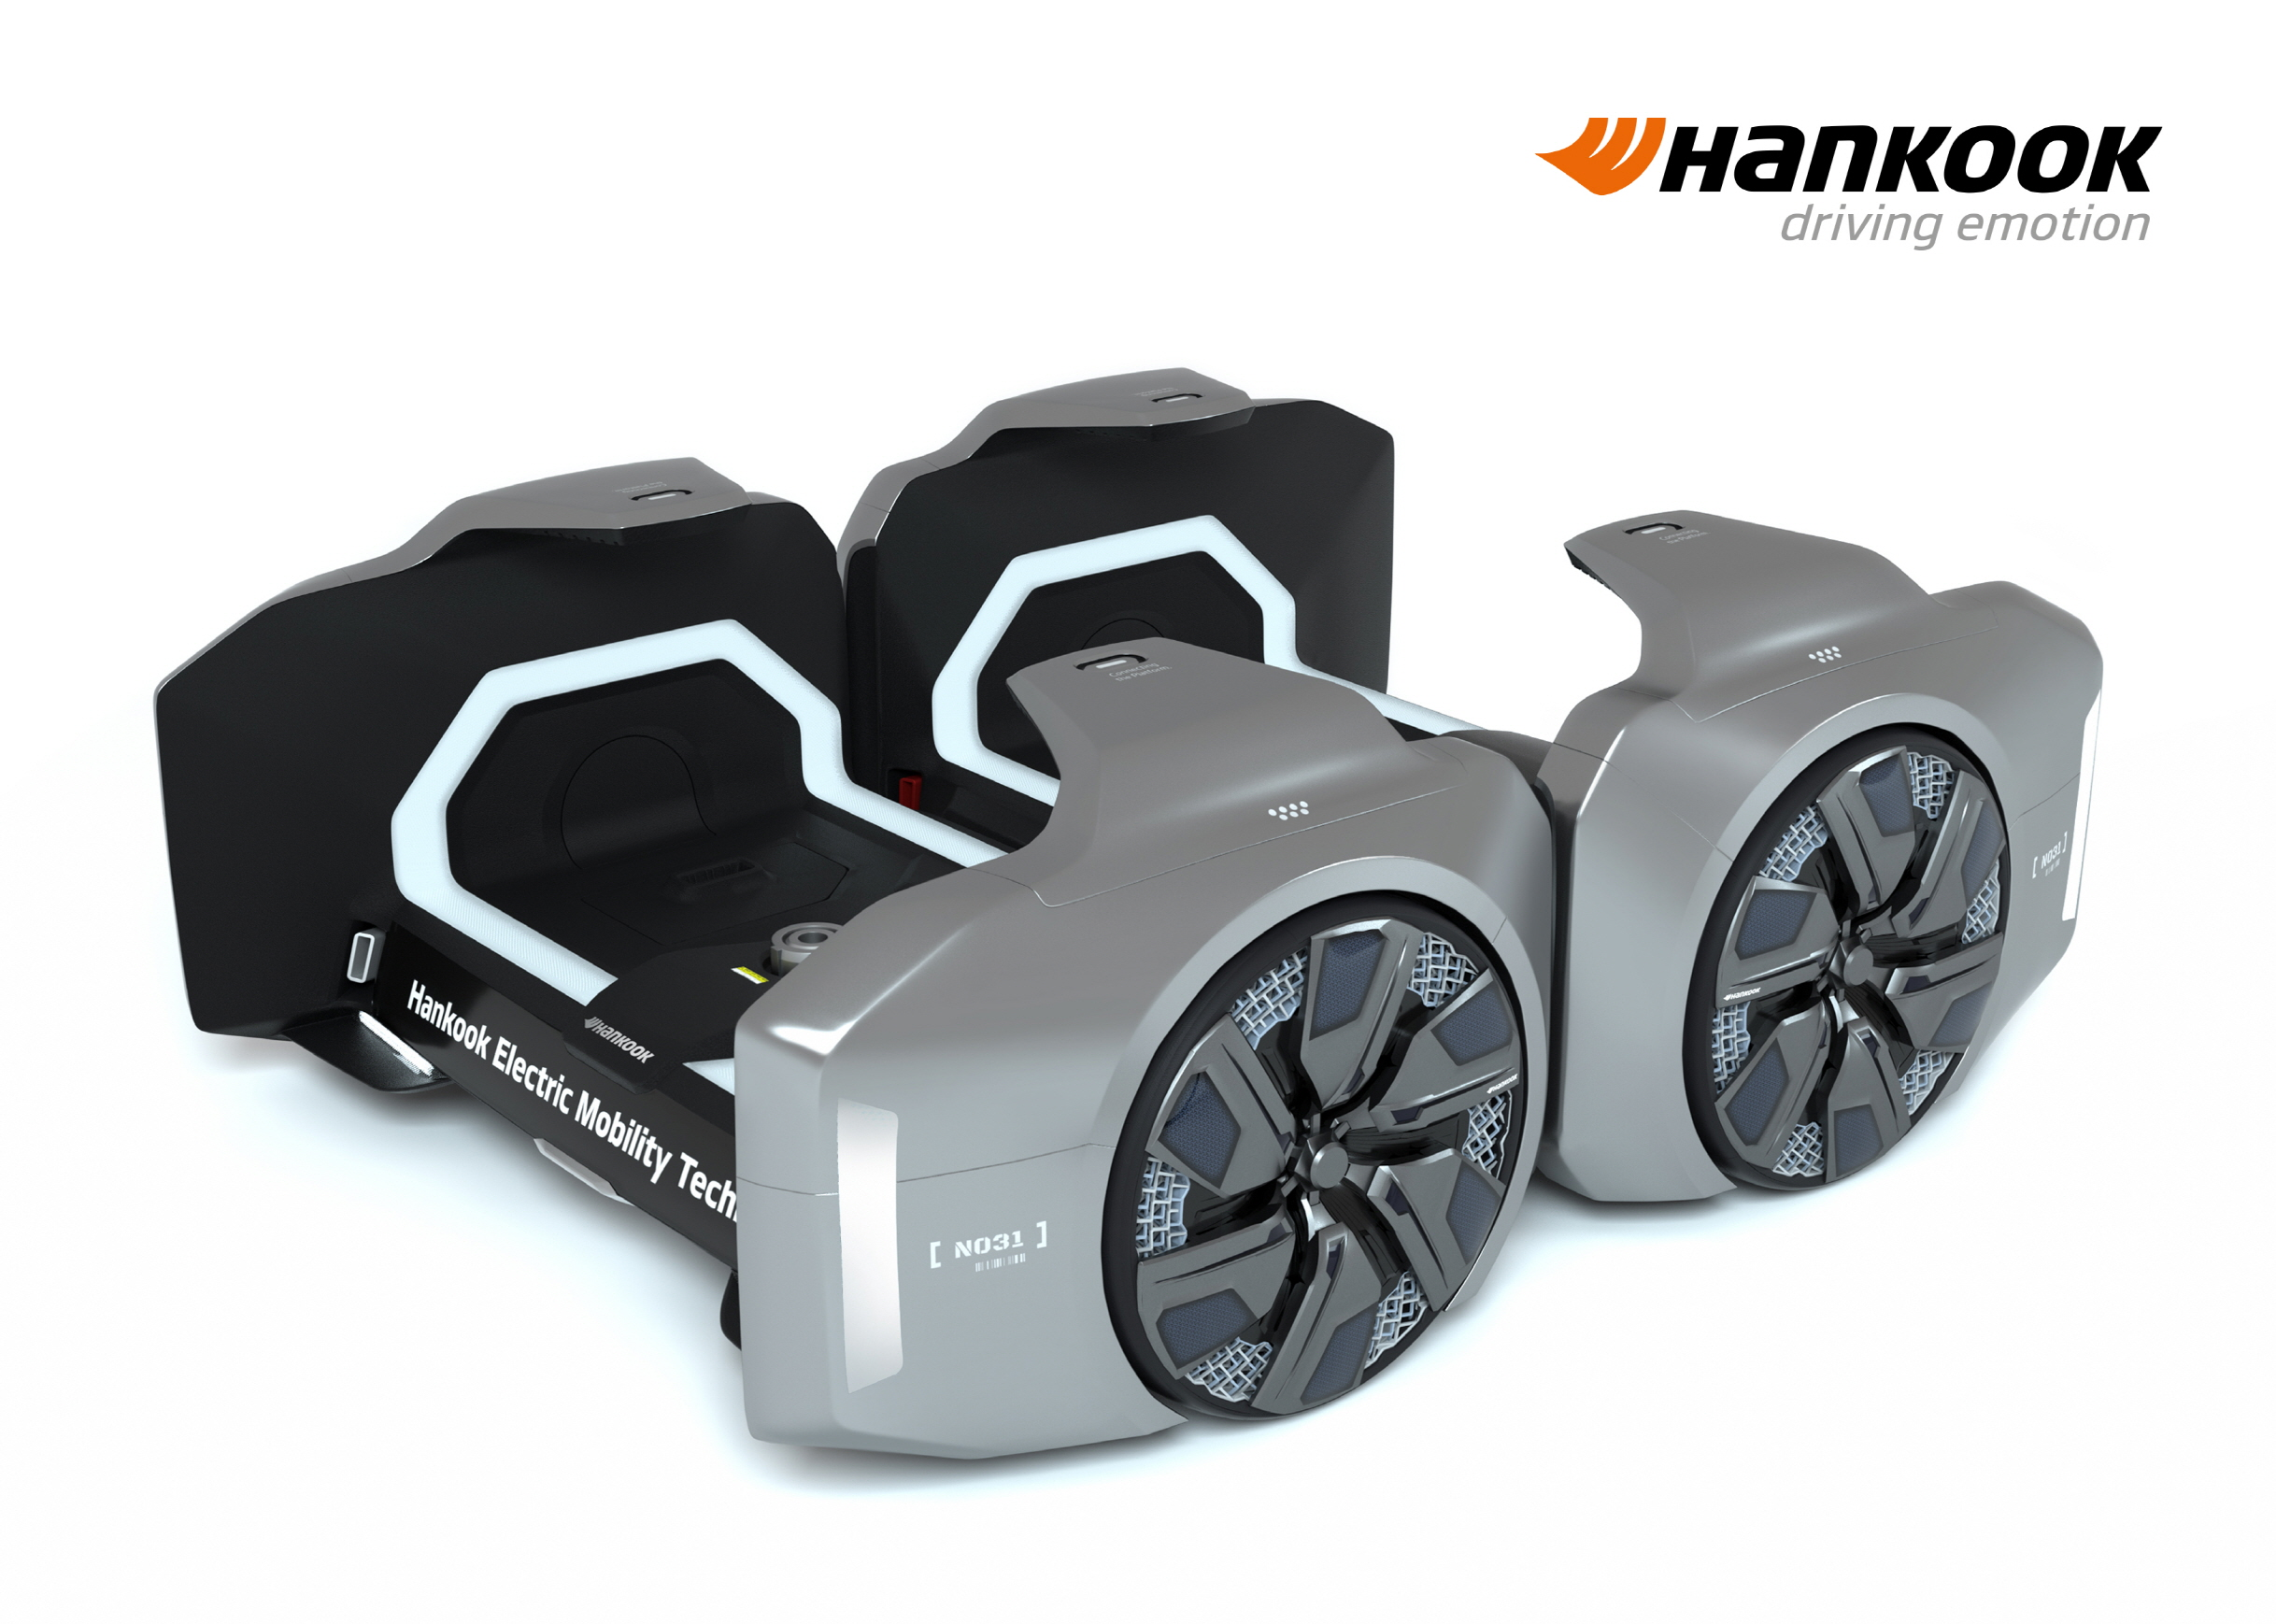 Hankook Tire unveils its 'Design Innovation 2020' project including its innovative modular platform-based tire concept, the 'Hankook Platform System (HPS)-Cell,' which supports the project's 'Urban Reshaping' theme and vision for the future mobility.